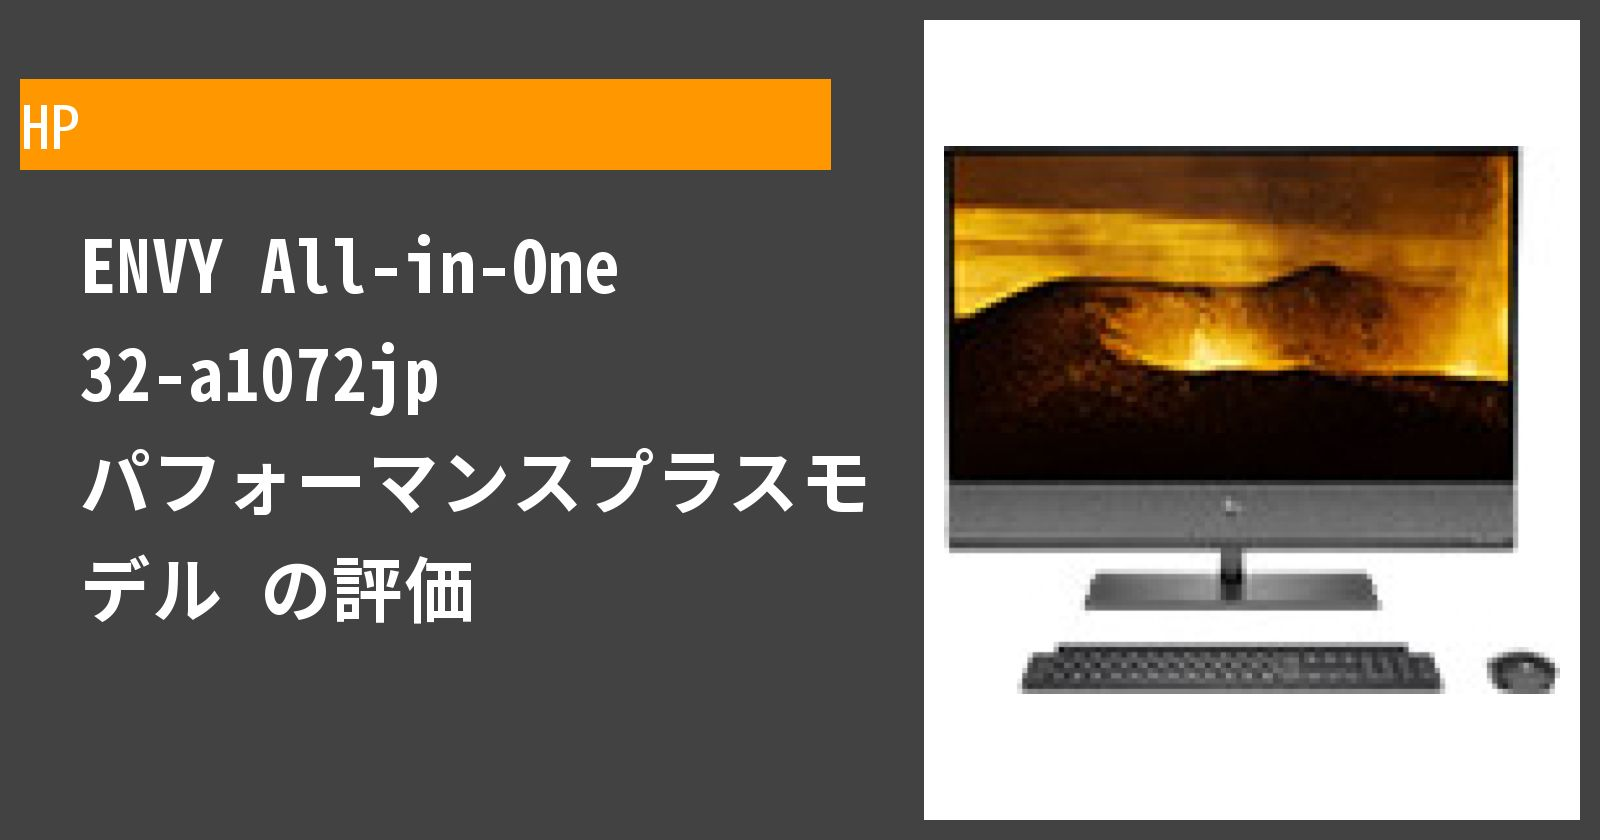 ENVY All-in-One 32-a1072jp パフォーマンスプラスモデルを徹底評価